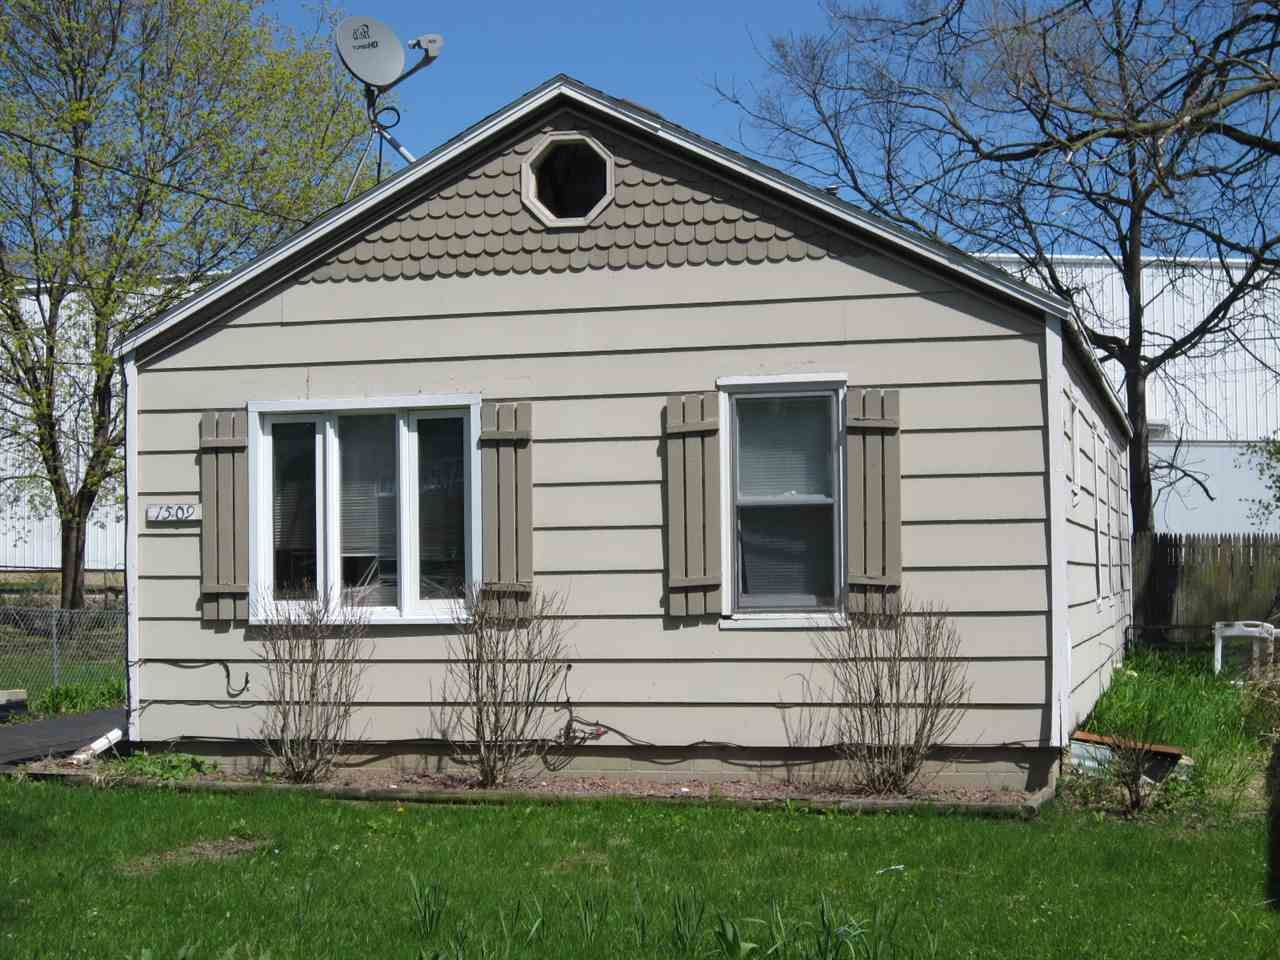 1509 Loftsgordon Ave, Madison, WI 53704 - #: 1876925